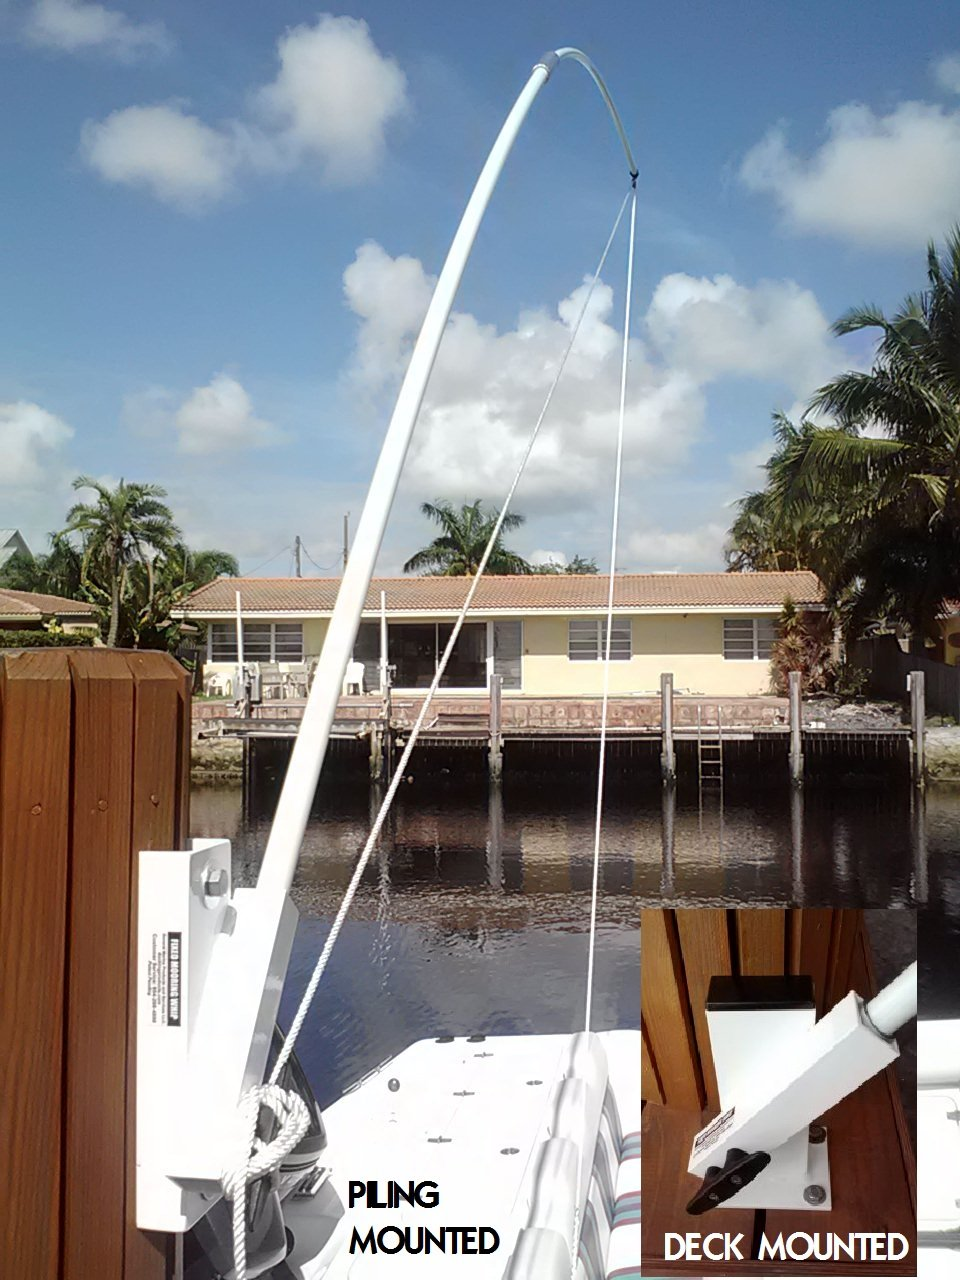 Mooring Whips Fixed Position Piling Mounted 14 ft. poles 20,000 lb all pleasure craft by General Marine Products